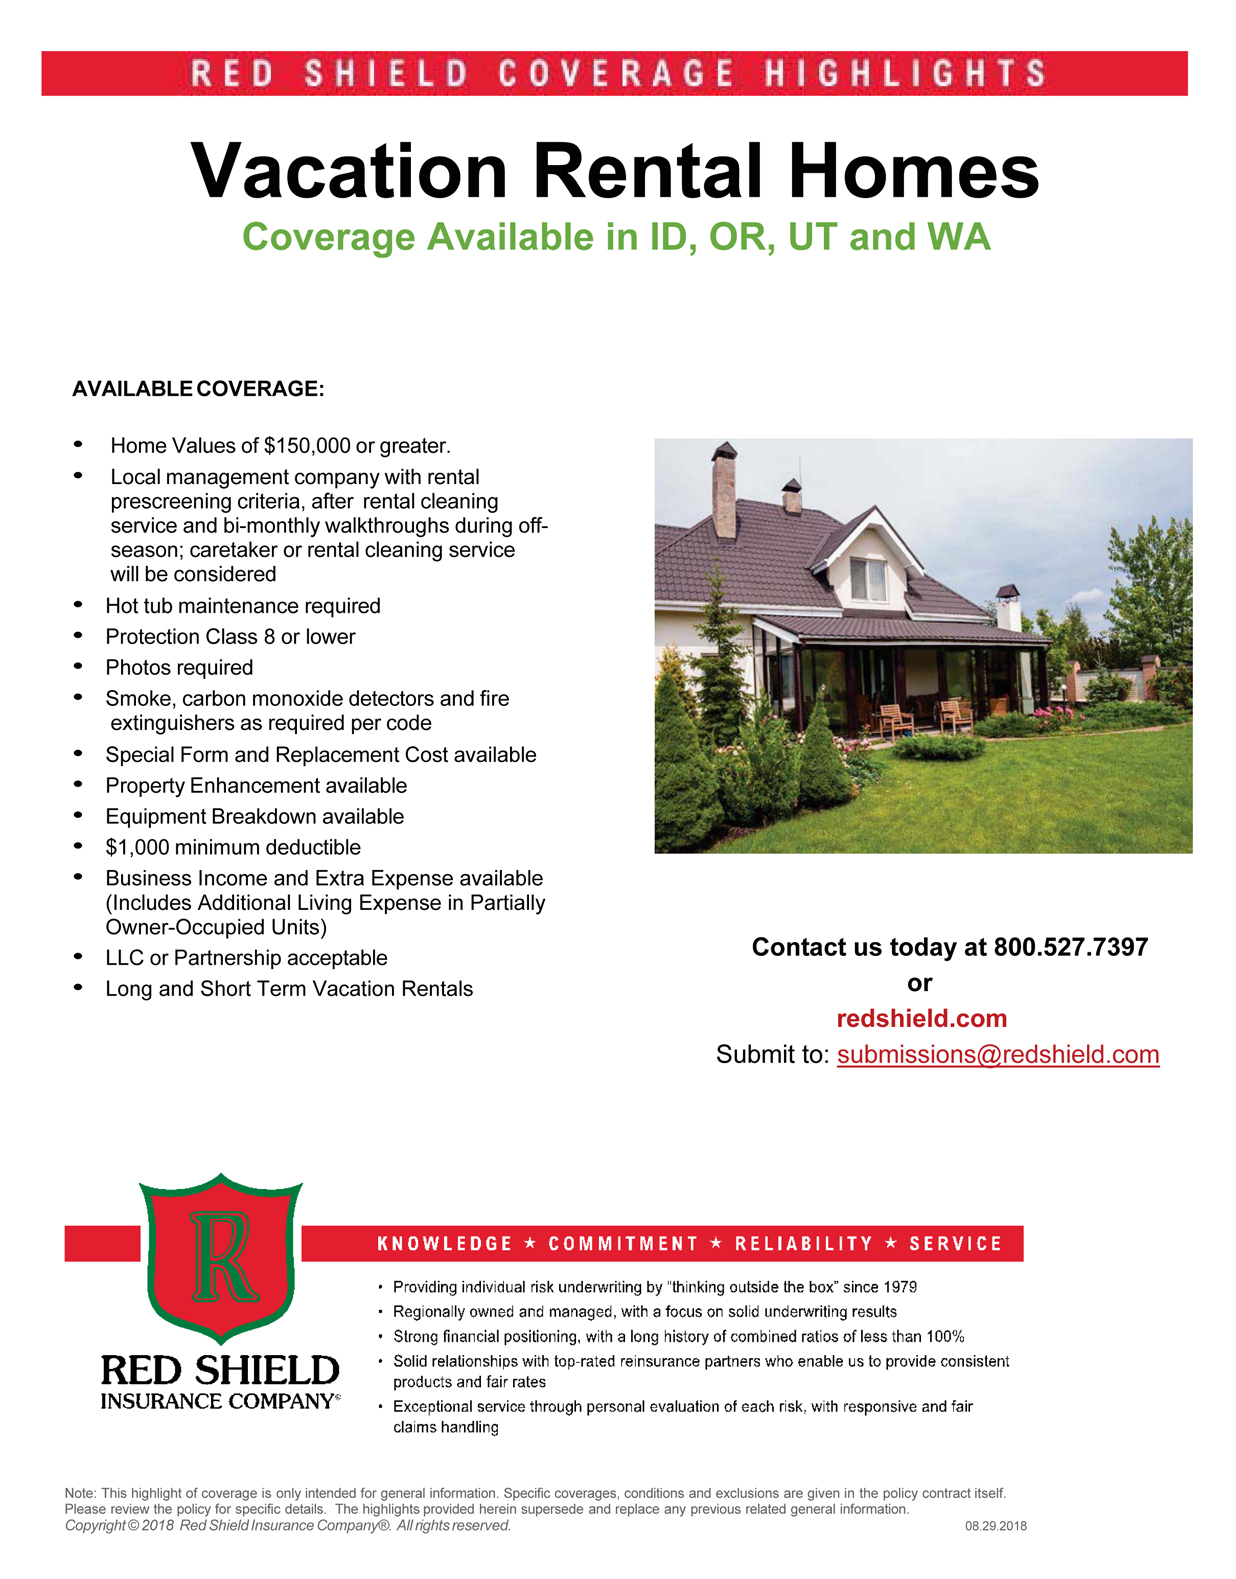 Red Shield Vacation Home Insurance